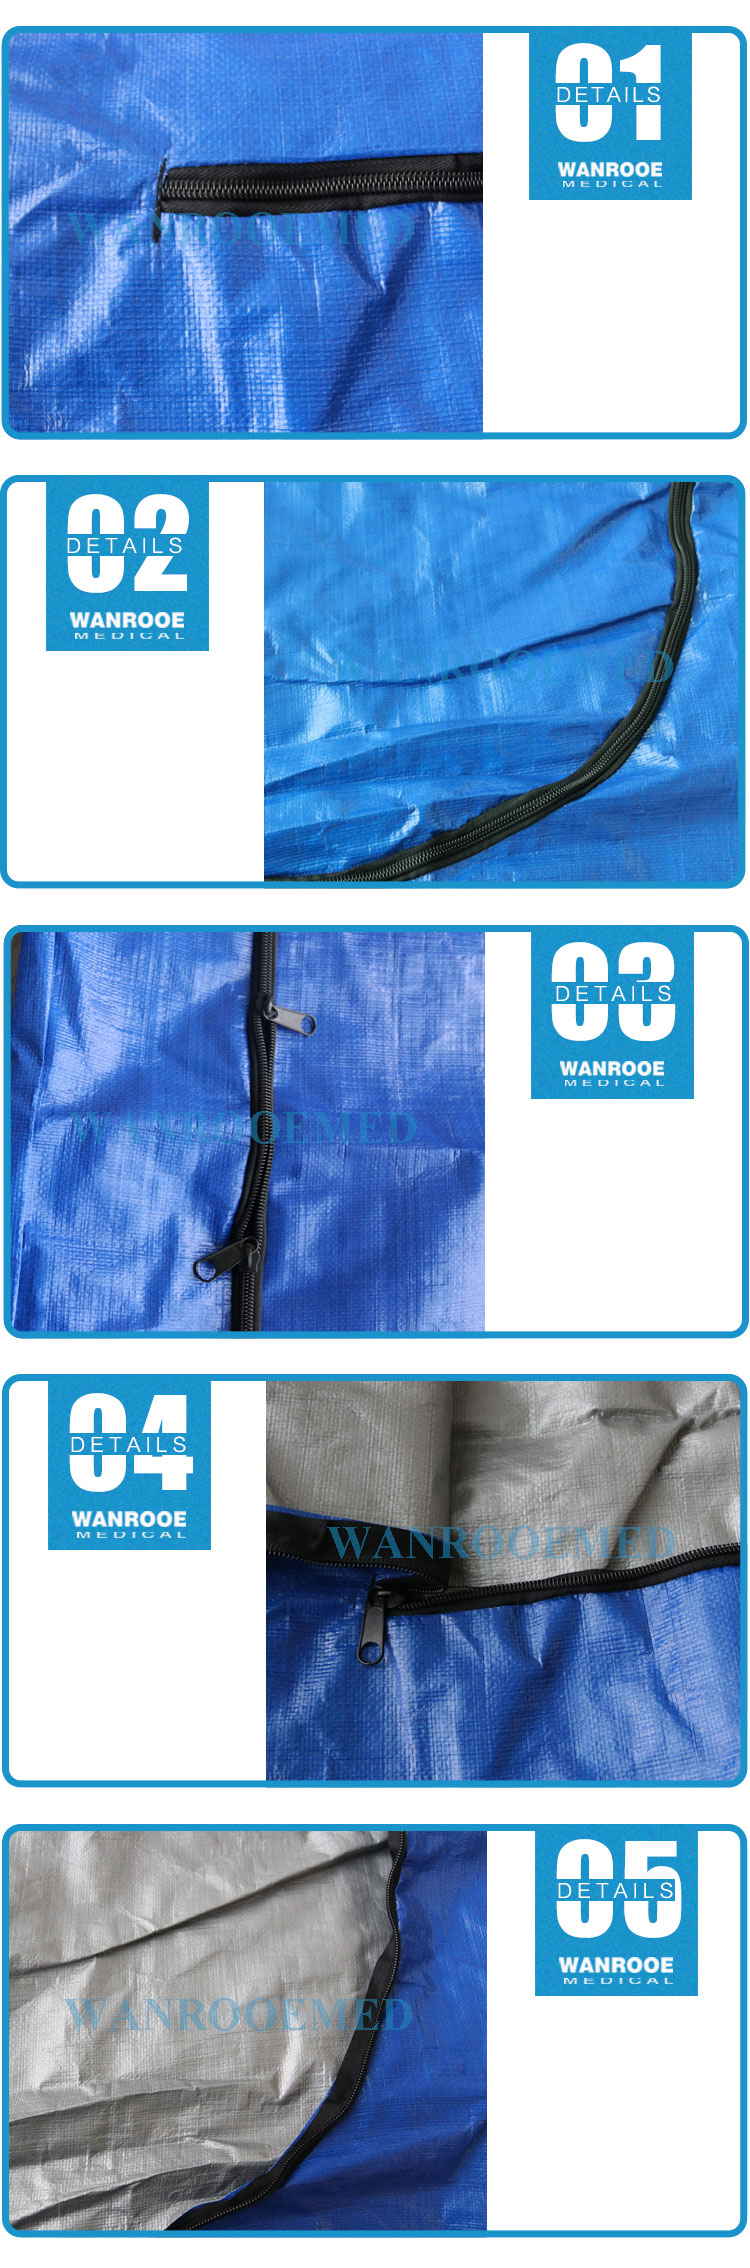 Cadaver Bag, Corpse Bag, Transport Dead Body Bag, PP PE Corpse Bag, Body Bag, Medium Duty Body Bag